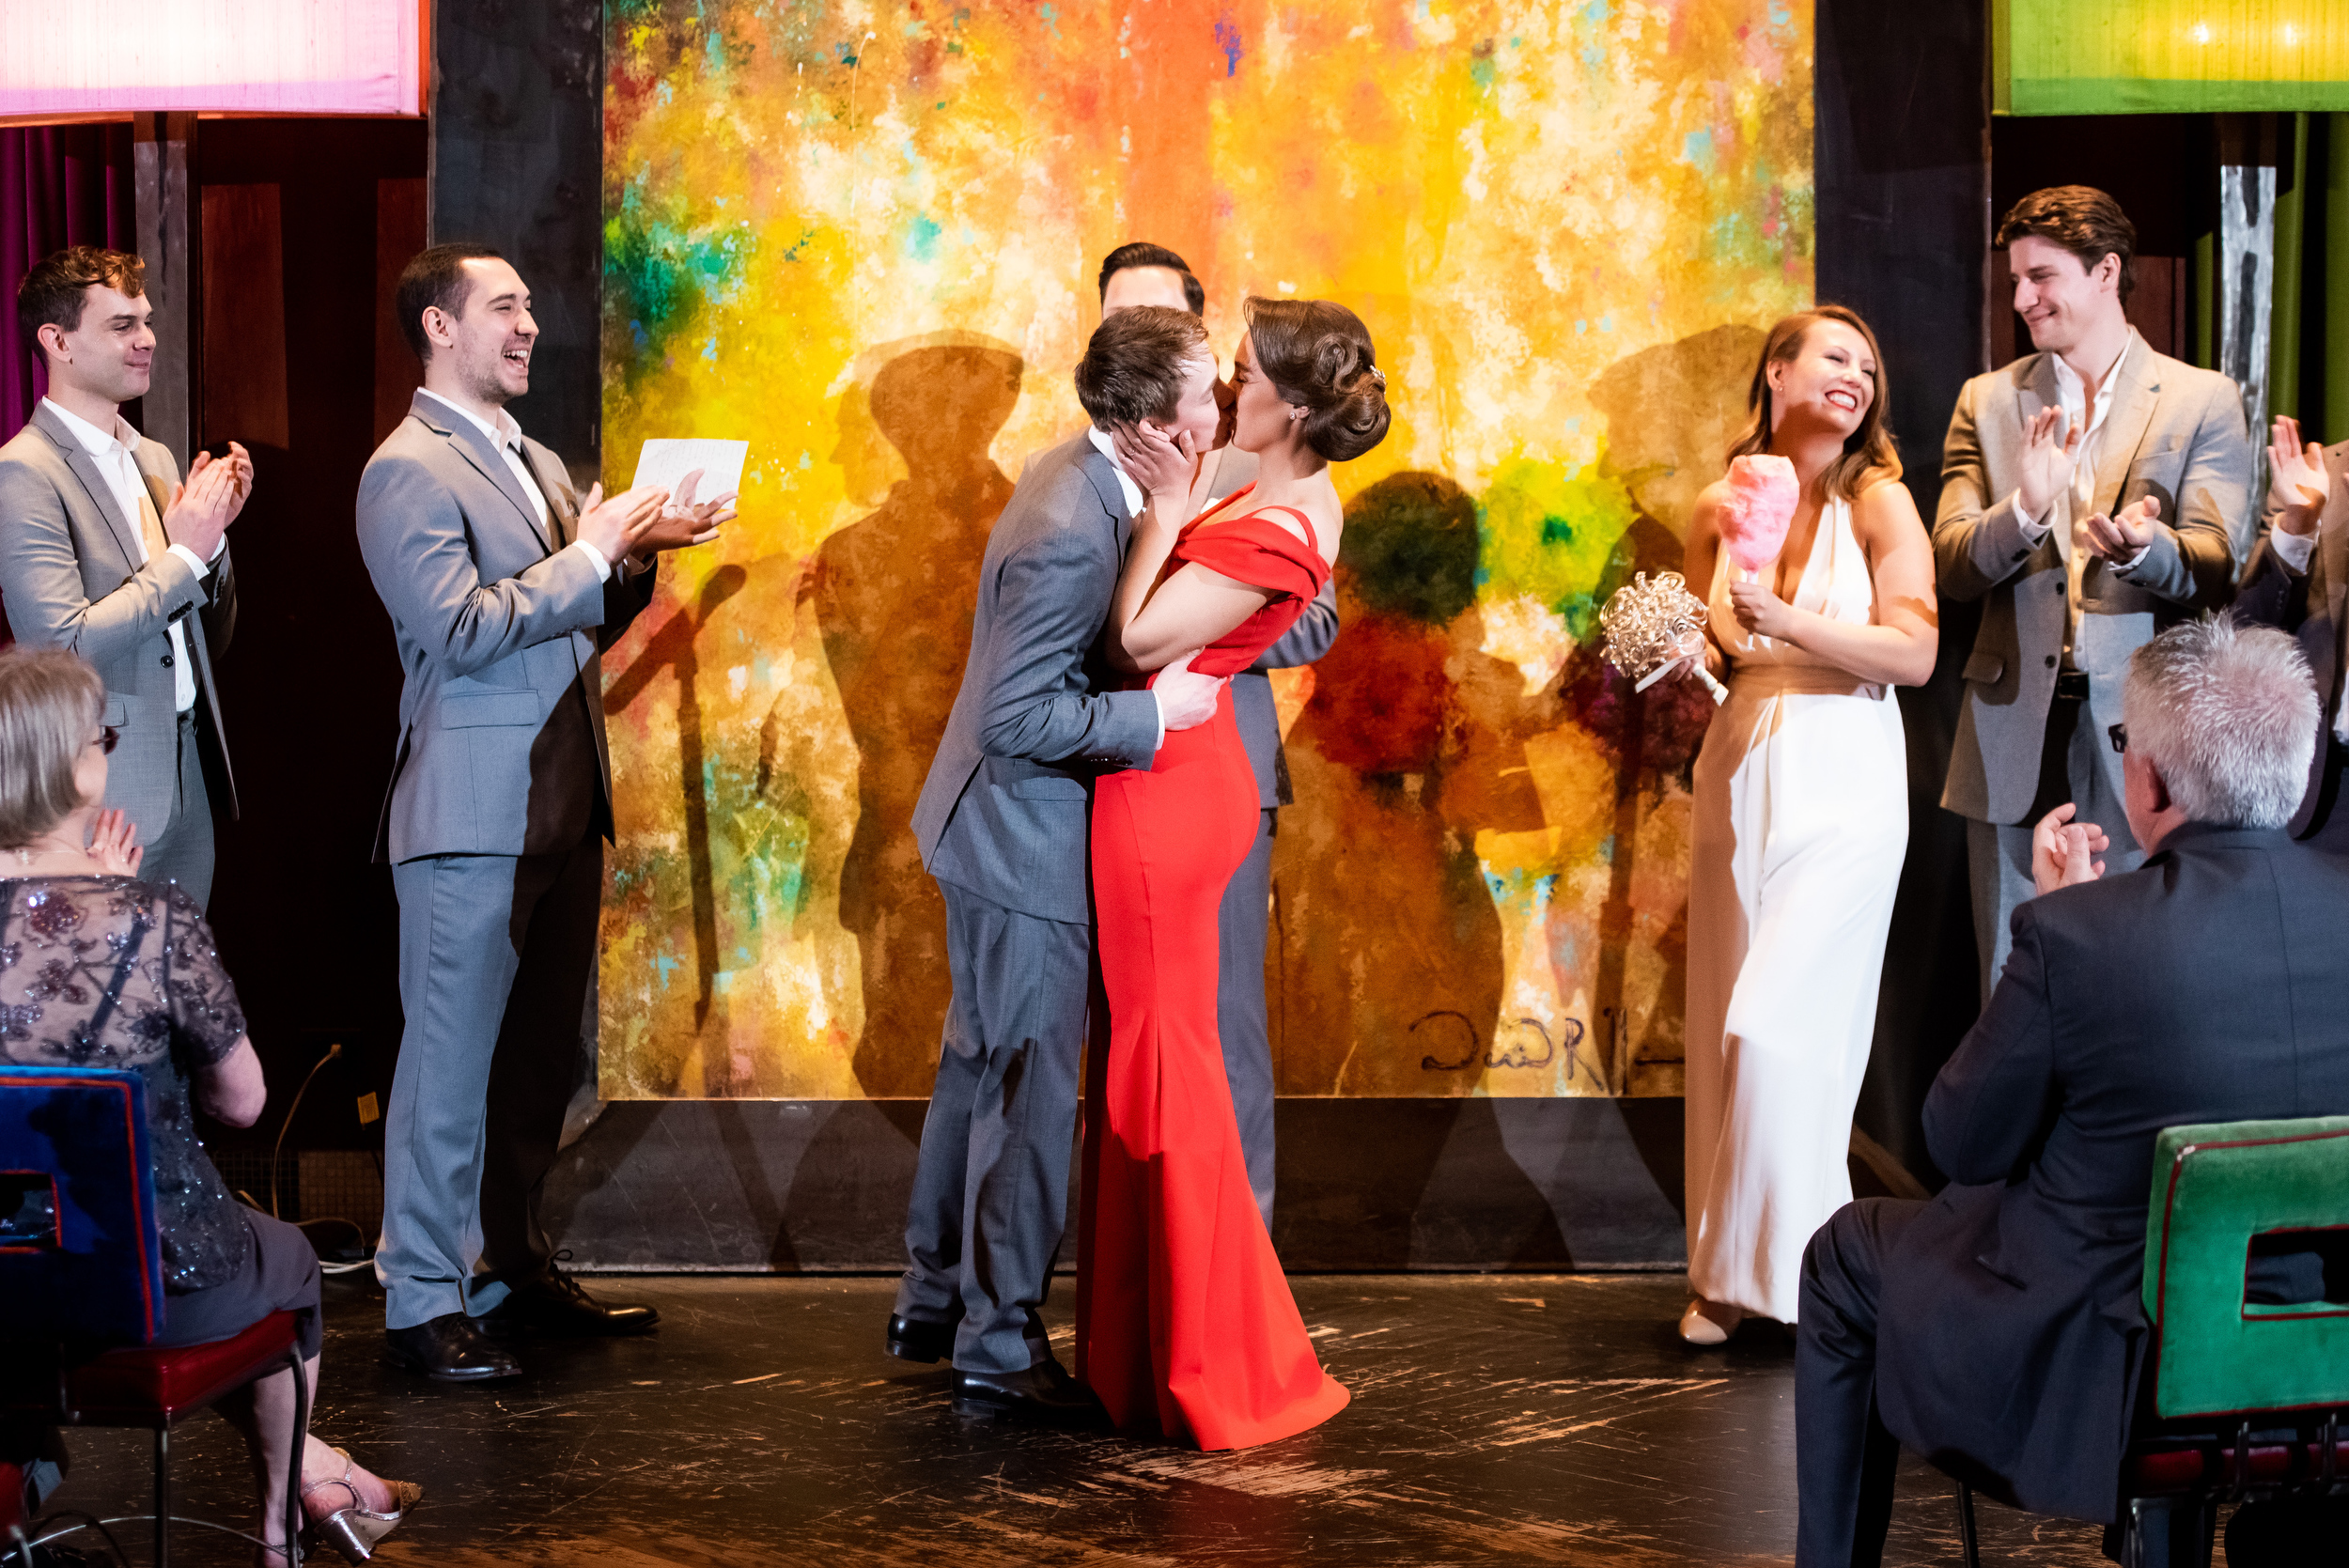 Colorful wedding ceremony venue: Carnivale Chicago wedding captured by J Brown Photography